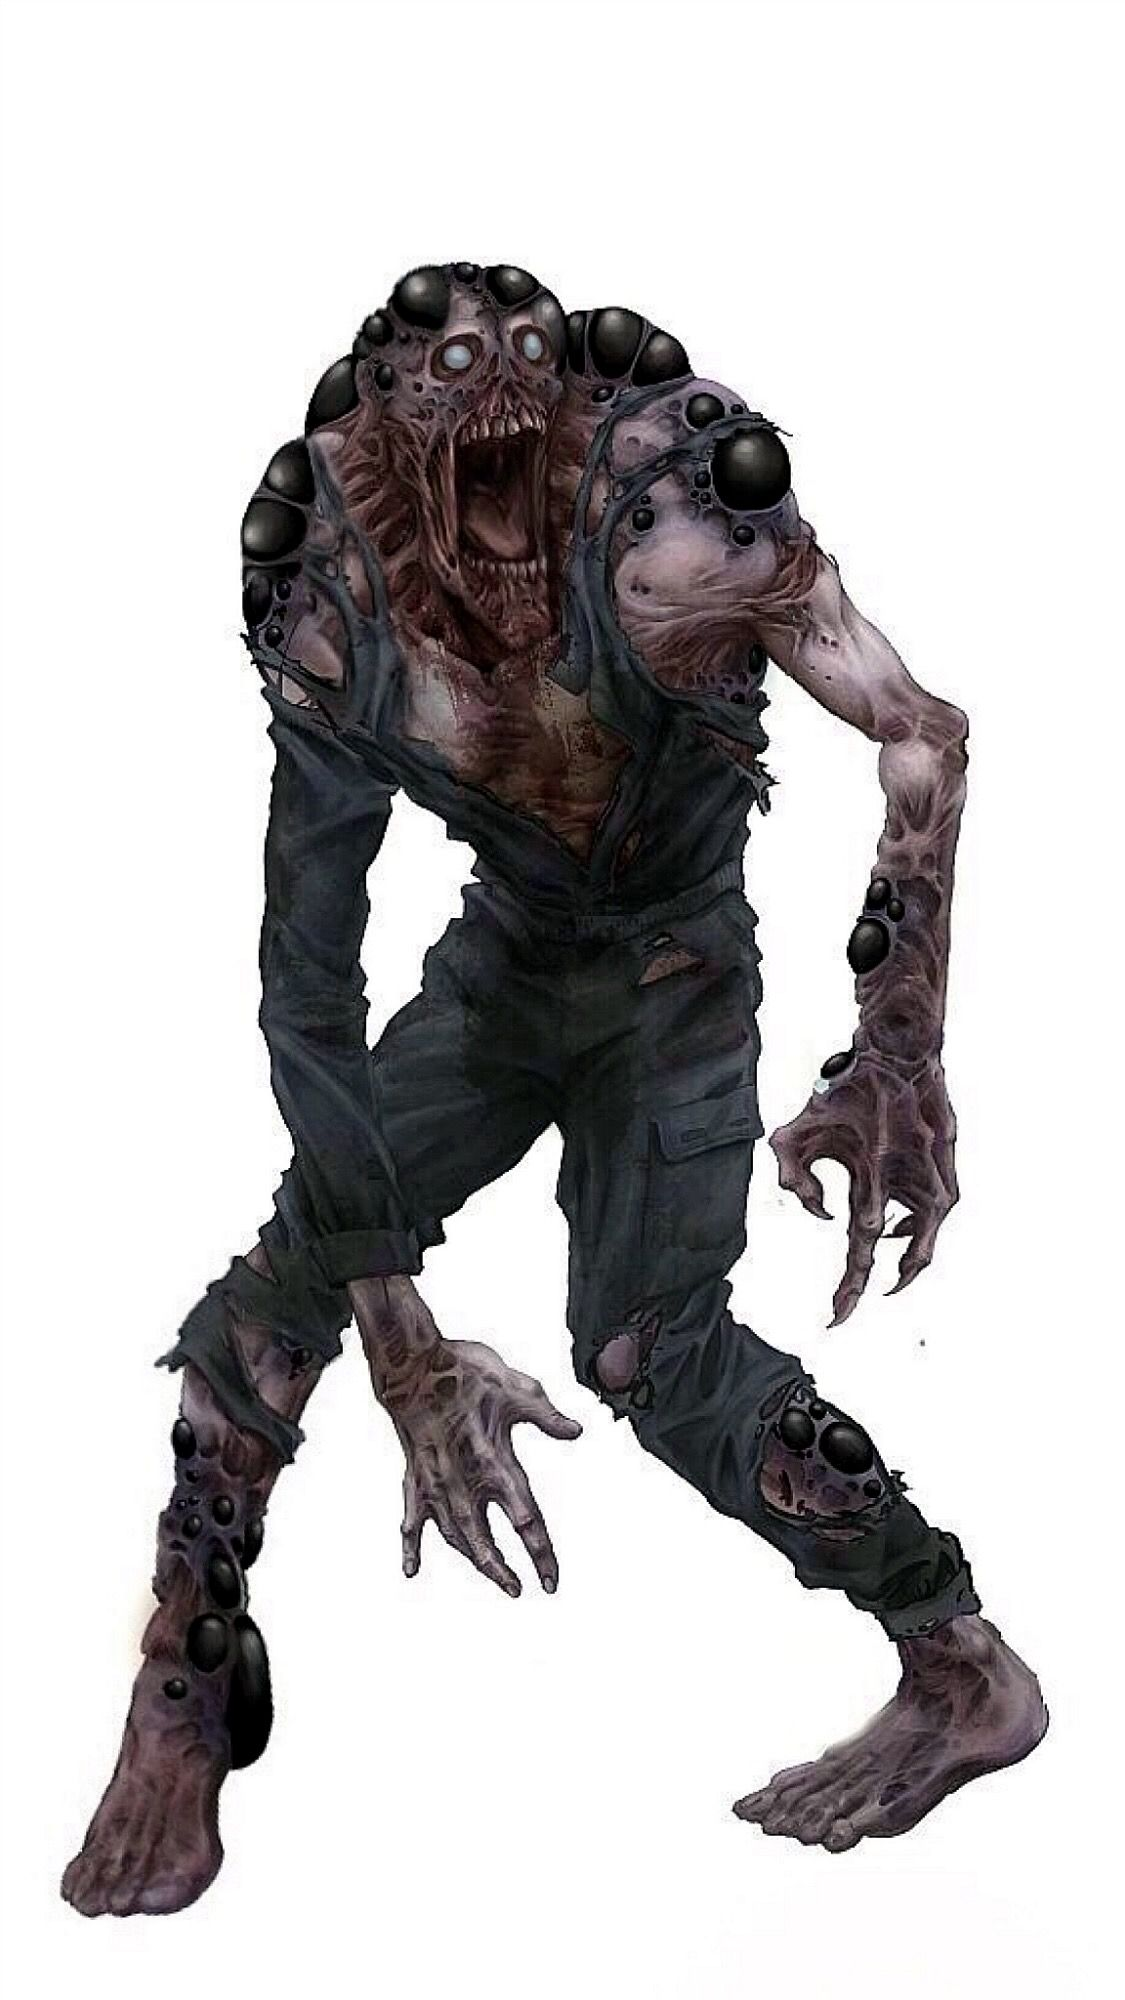 Pin By Greyson T On Undead Zombie S Infected Creature Art